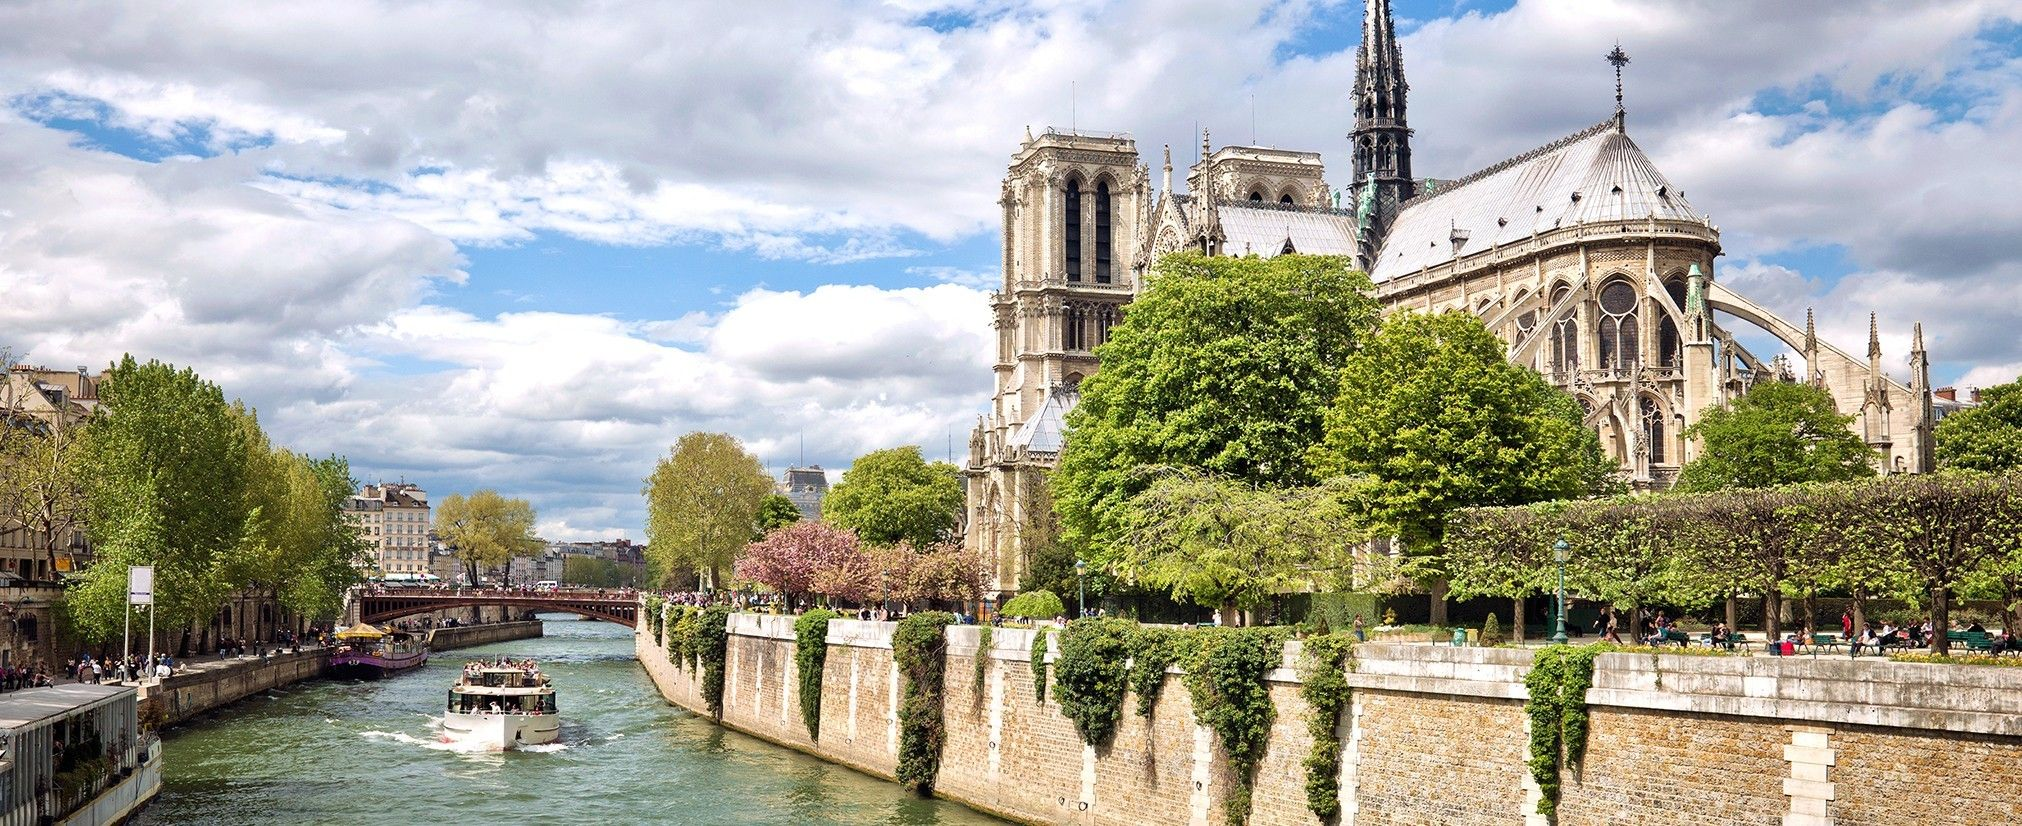 What to do in Paris right now, according to Jetsetter